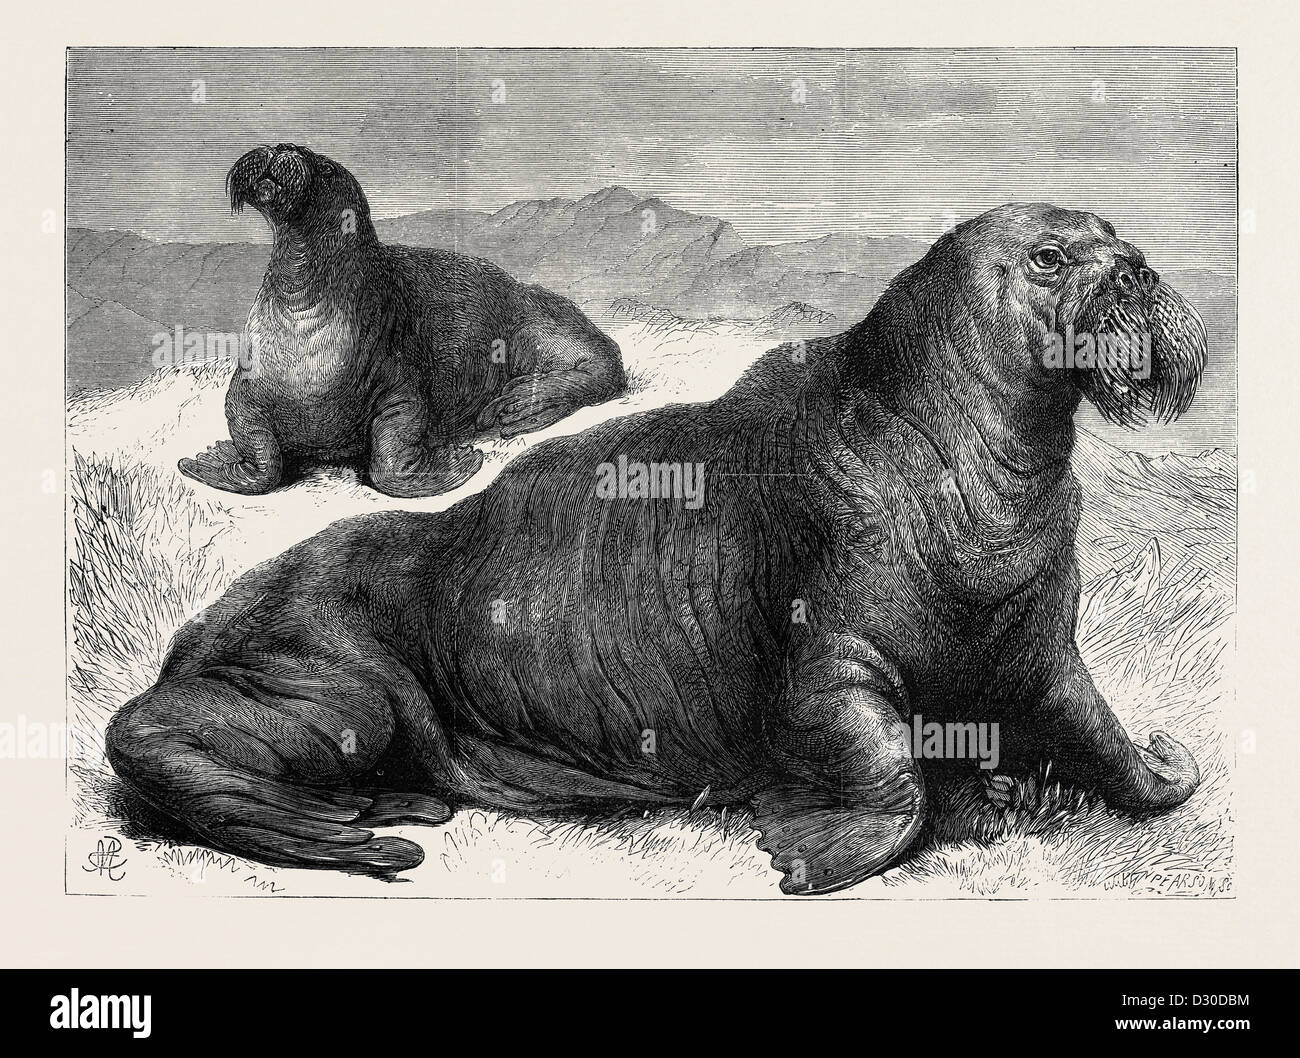 THE WALRUS RECENTLY ADDED TO THE COLLECTION OF THE ZOOLOGICAL SOCIETY IN REGENT'S PARK LONDON UK 1867 - Stock Image